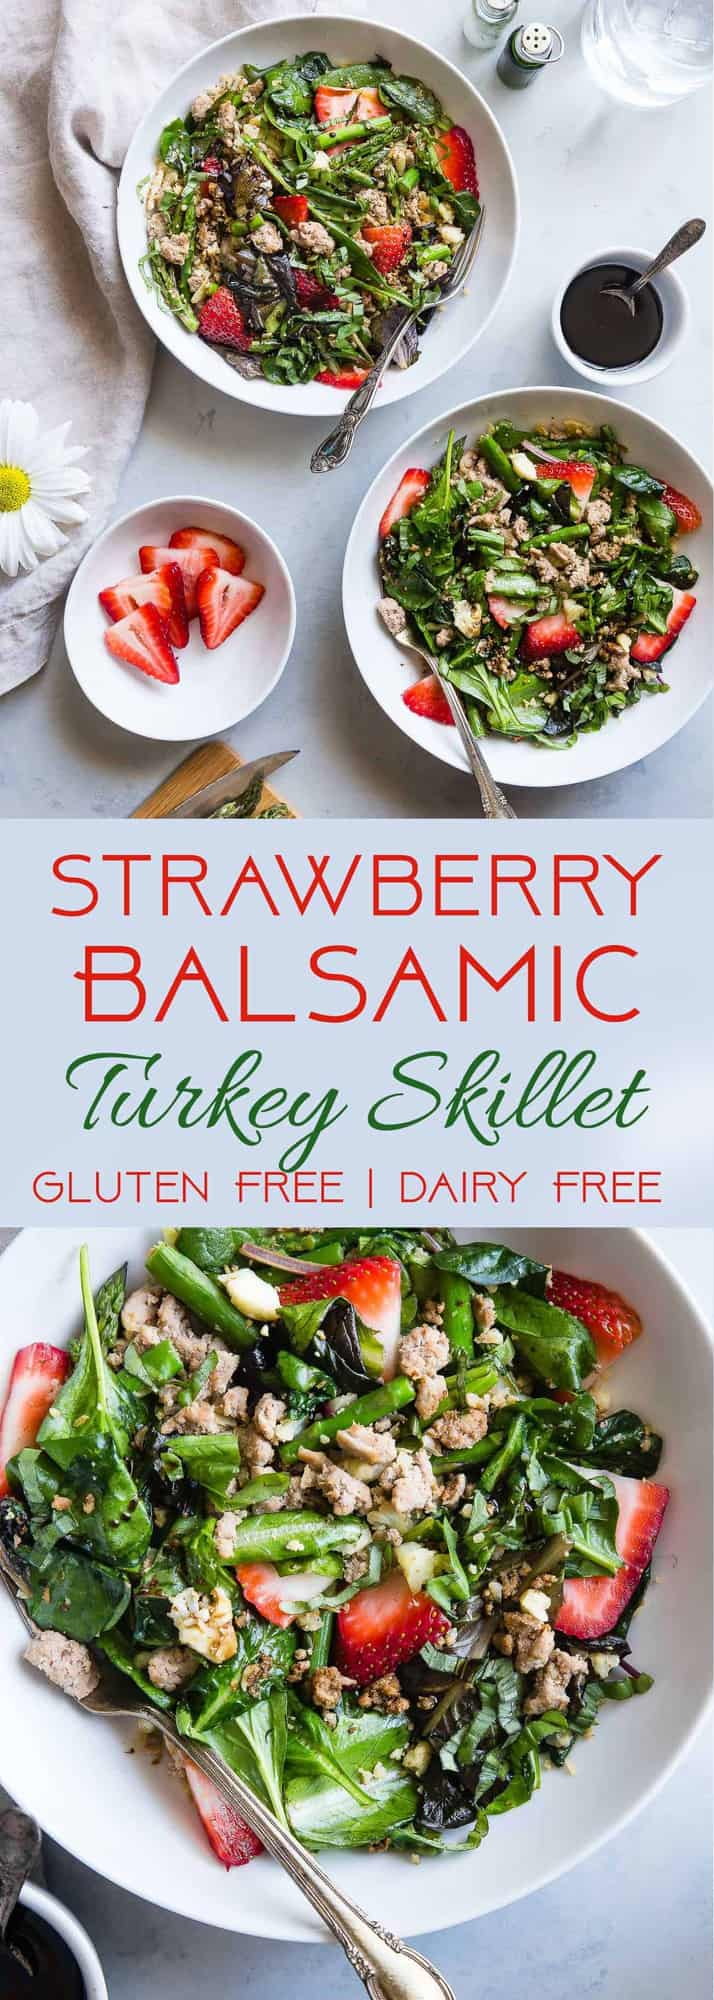 Paleo Strawberry Balsamic Cauliflower Turkey Skillet - These easy, weeknight dinner is loaded with sweet and tangy summer flavors! It's a unique, protein packed dinner that is gluten, grain and dairy free and only 300 calories! | #Foodfaithfitness.com | #Paleo #Glutenfree #Healthy #Dairyfree #Grainfree